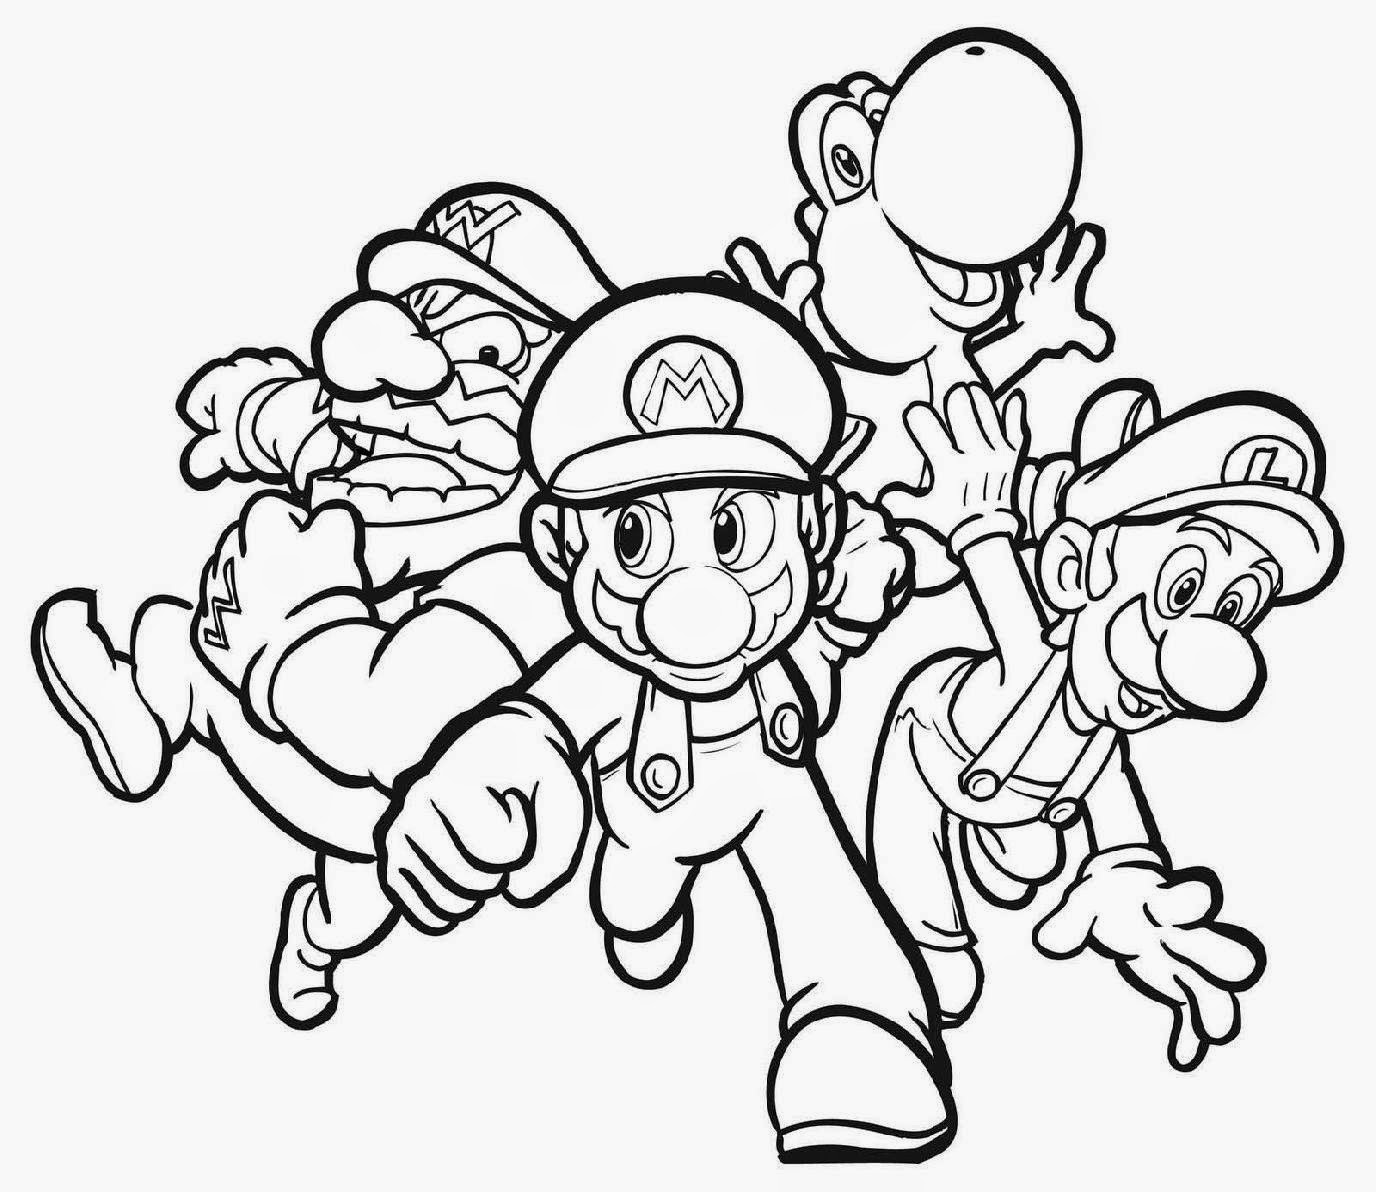 mario coloring pages to print   Free Large Images